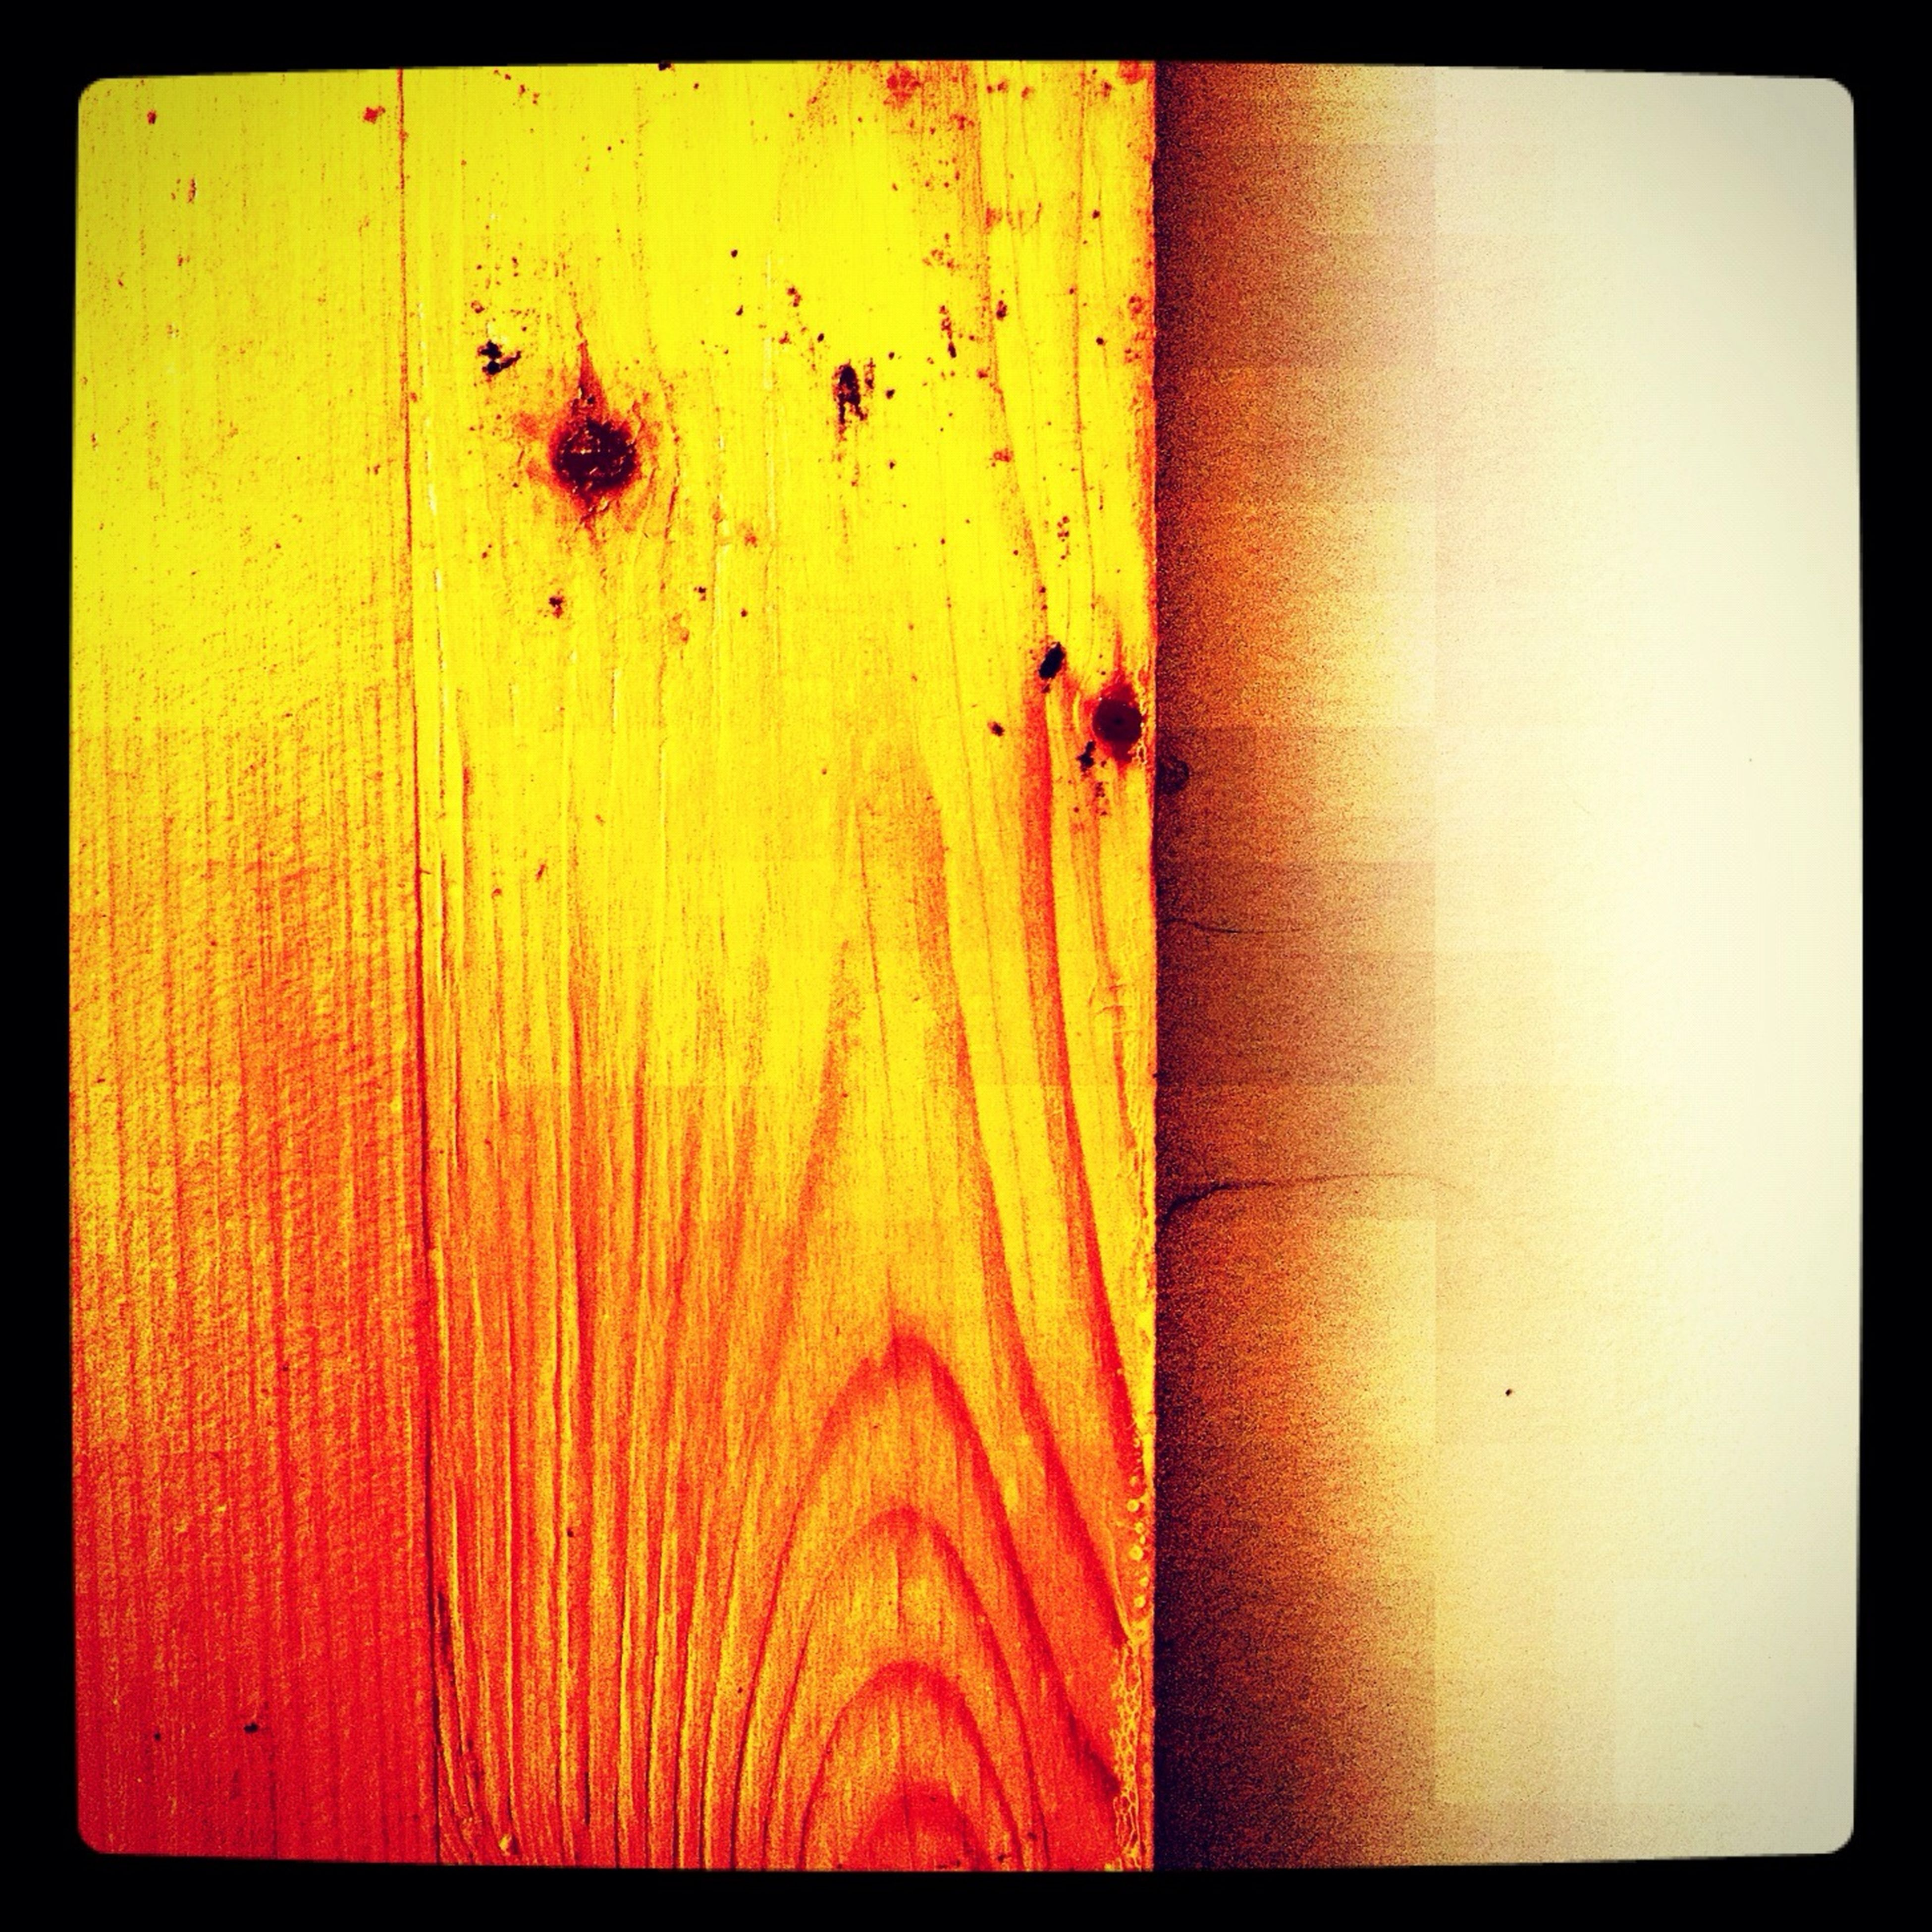 transfer print, auto post production filter, full frame, close-up, textured, backgrounds, yellow, wood - material, wall - building feature, weathered, pattern, red, wall, plank, wooden, orange color, no people, wood, detail, brown